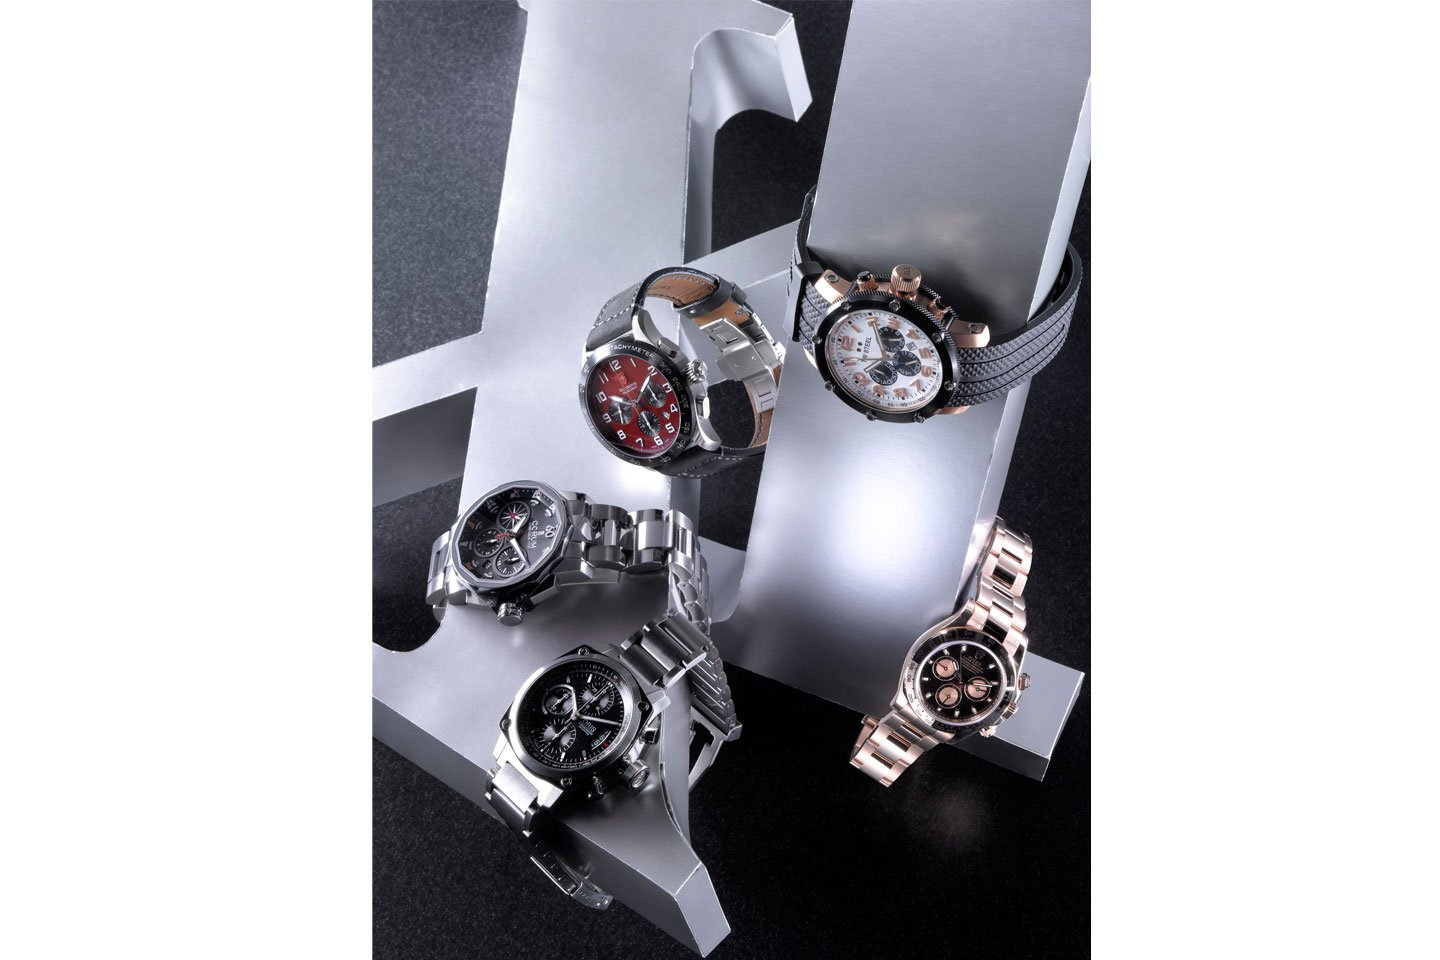 set square wrist you your with watches story gq watch a upgrade will that apart mens